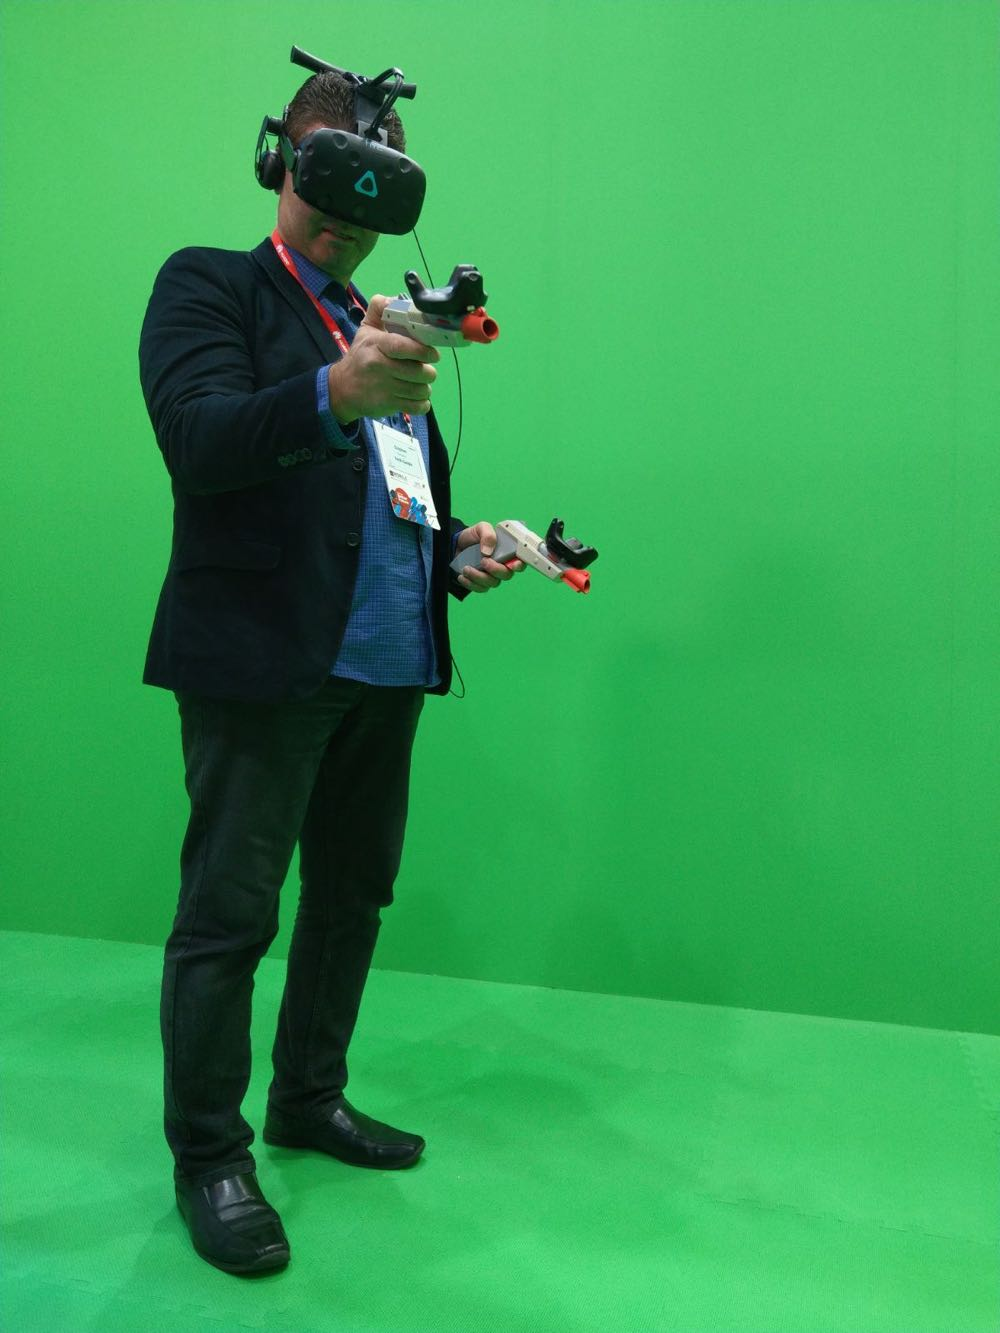 Tech Guide editor Stephen Fenech fighting off zombies with the HTC Vive Pro